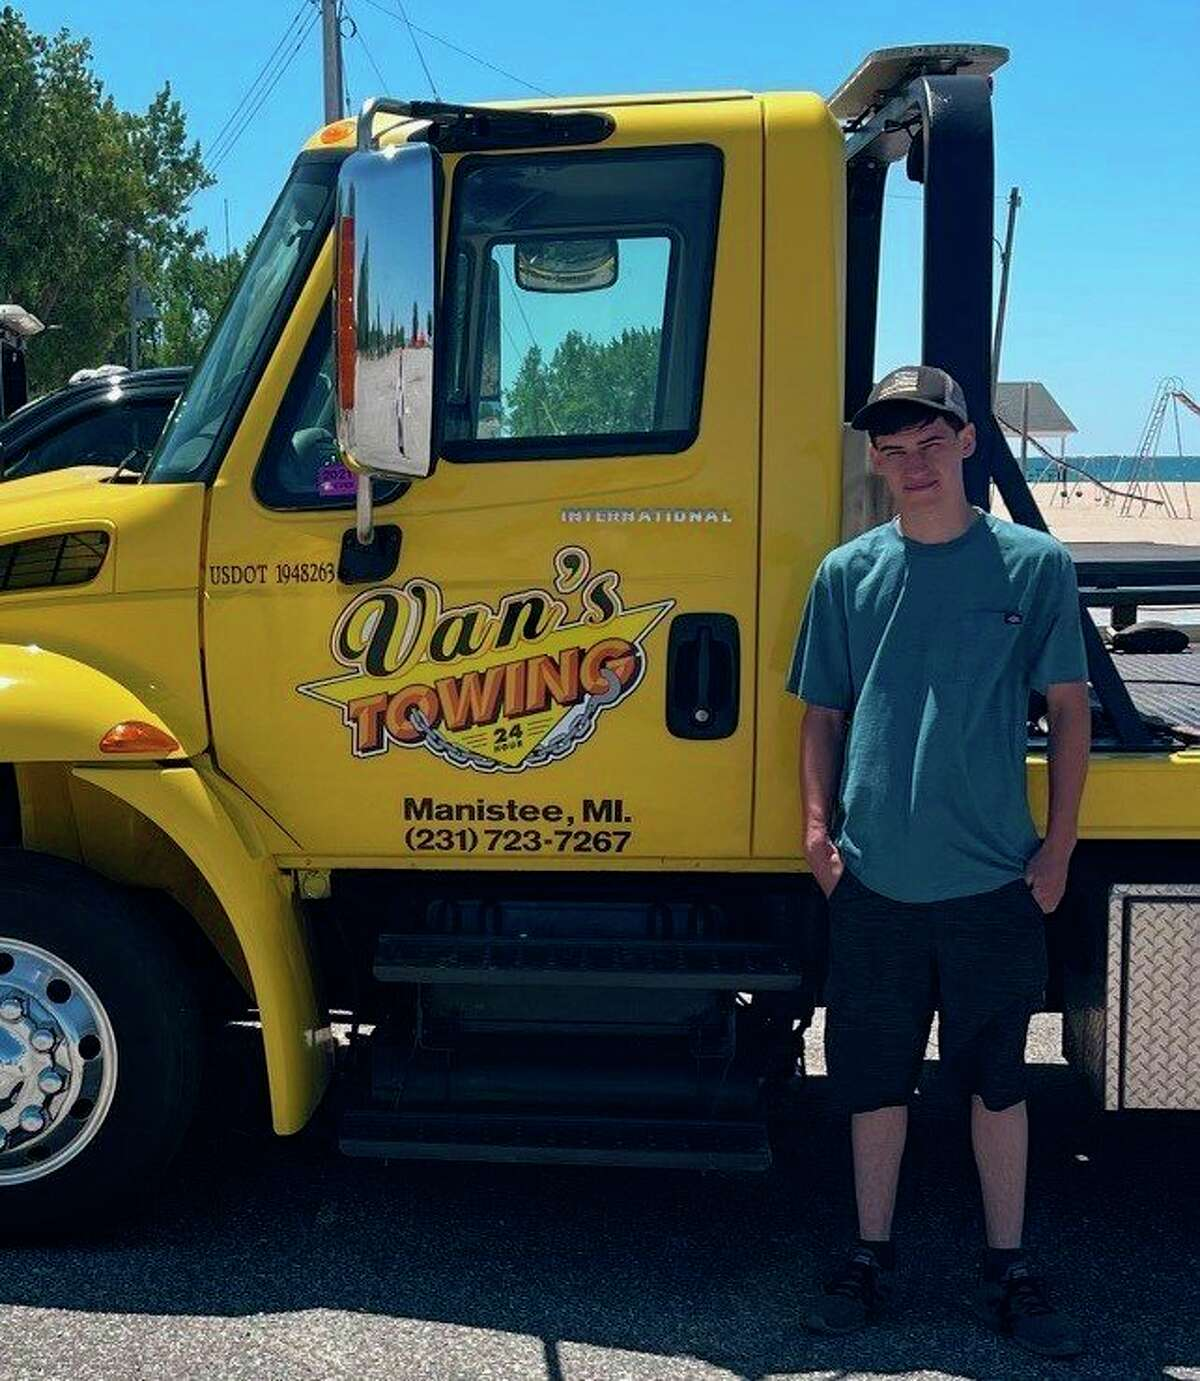 Statewide Towingin Bear Lake, owned byJohn Adams, purchased Van's Towing of Manistee in February. It will be operated by John's son Dean. (Courtesy photo)